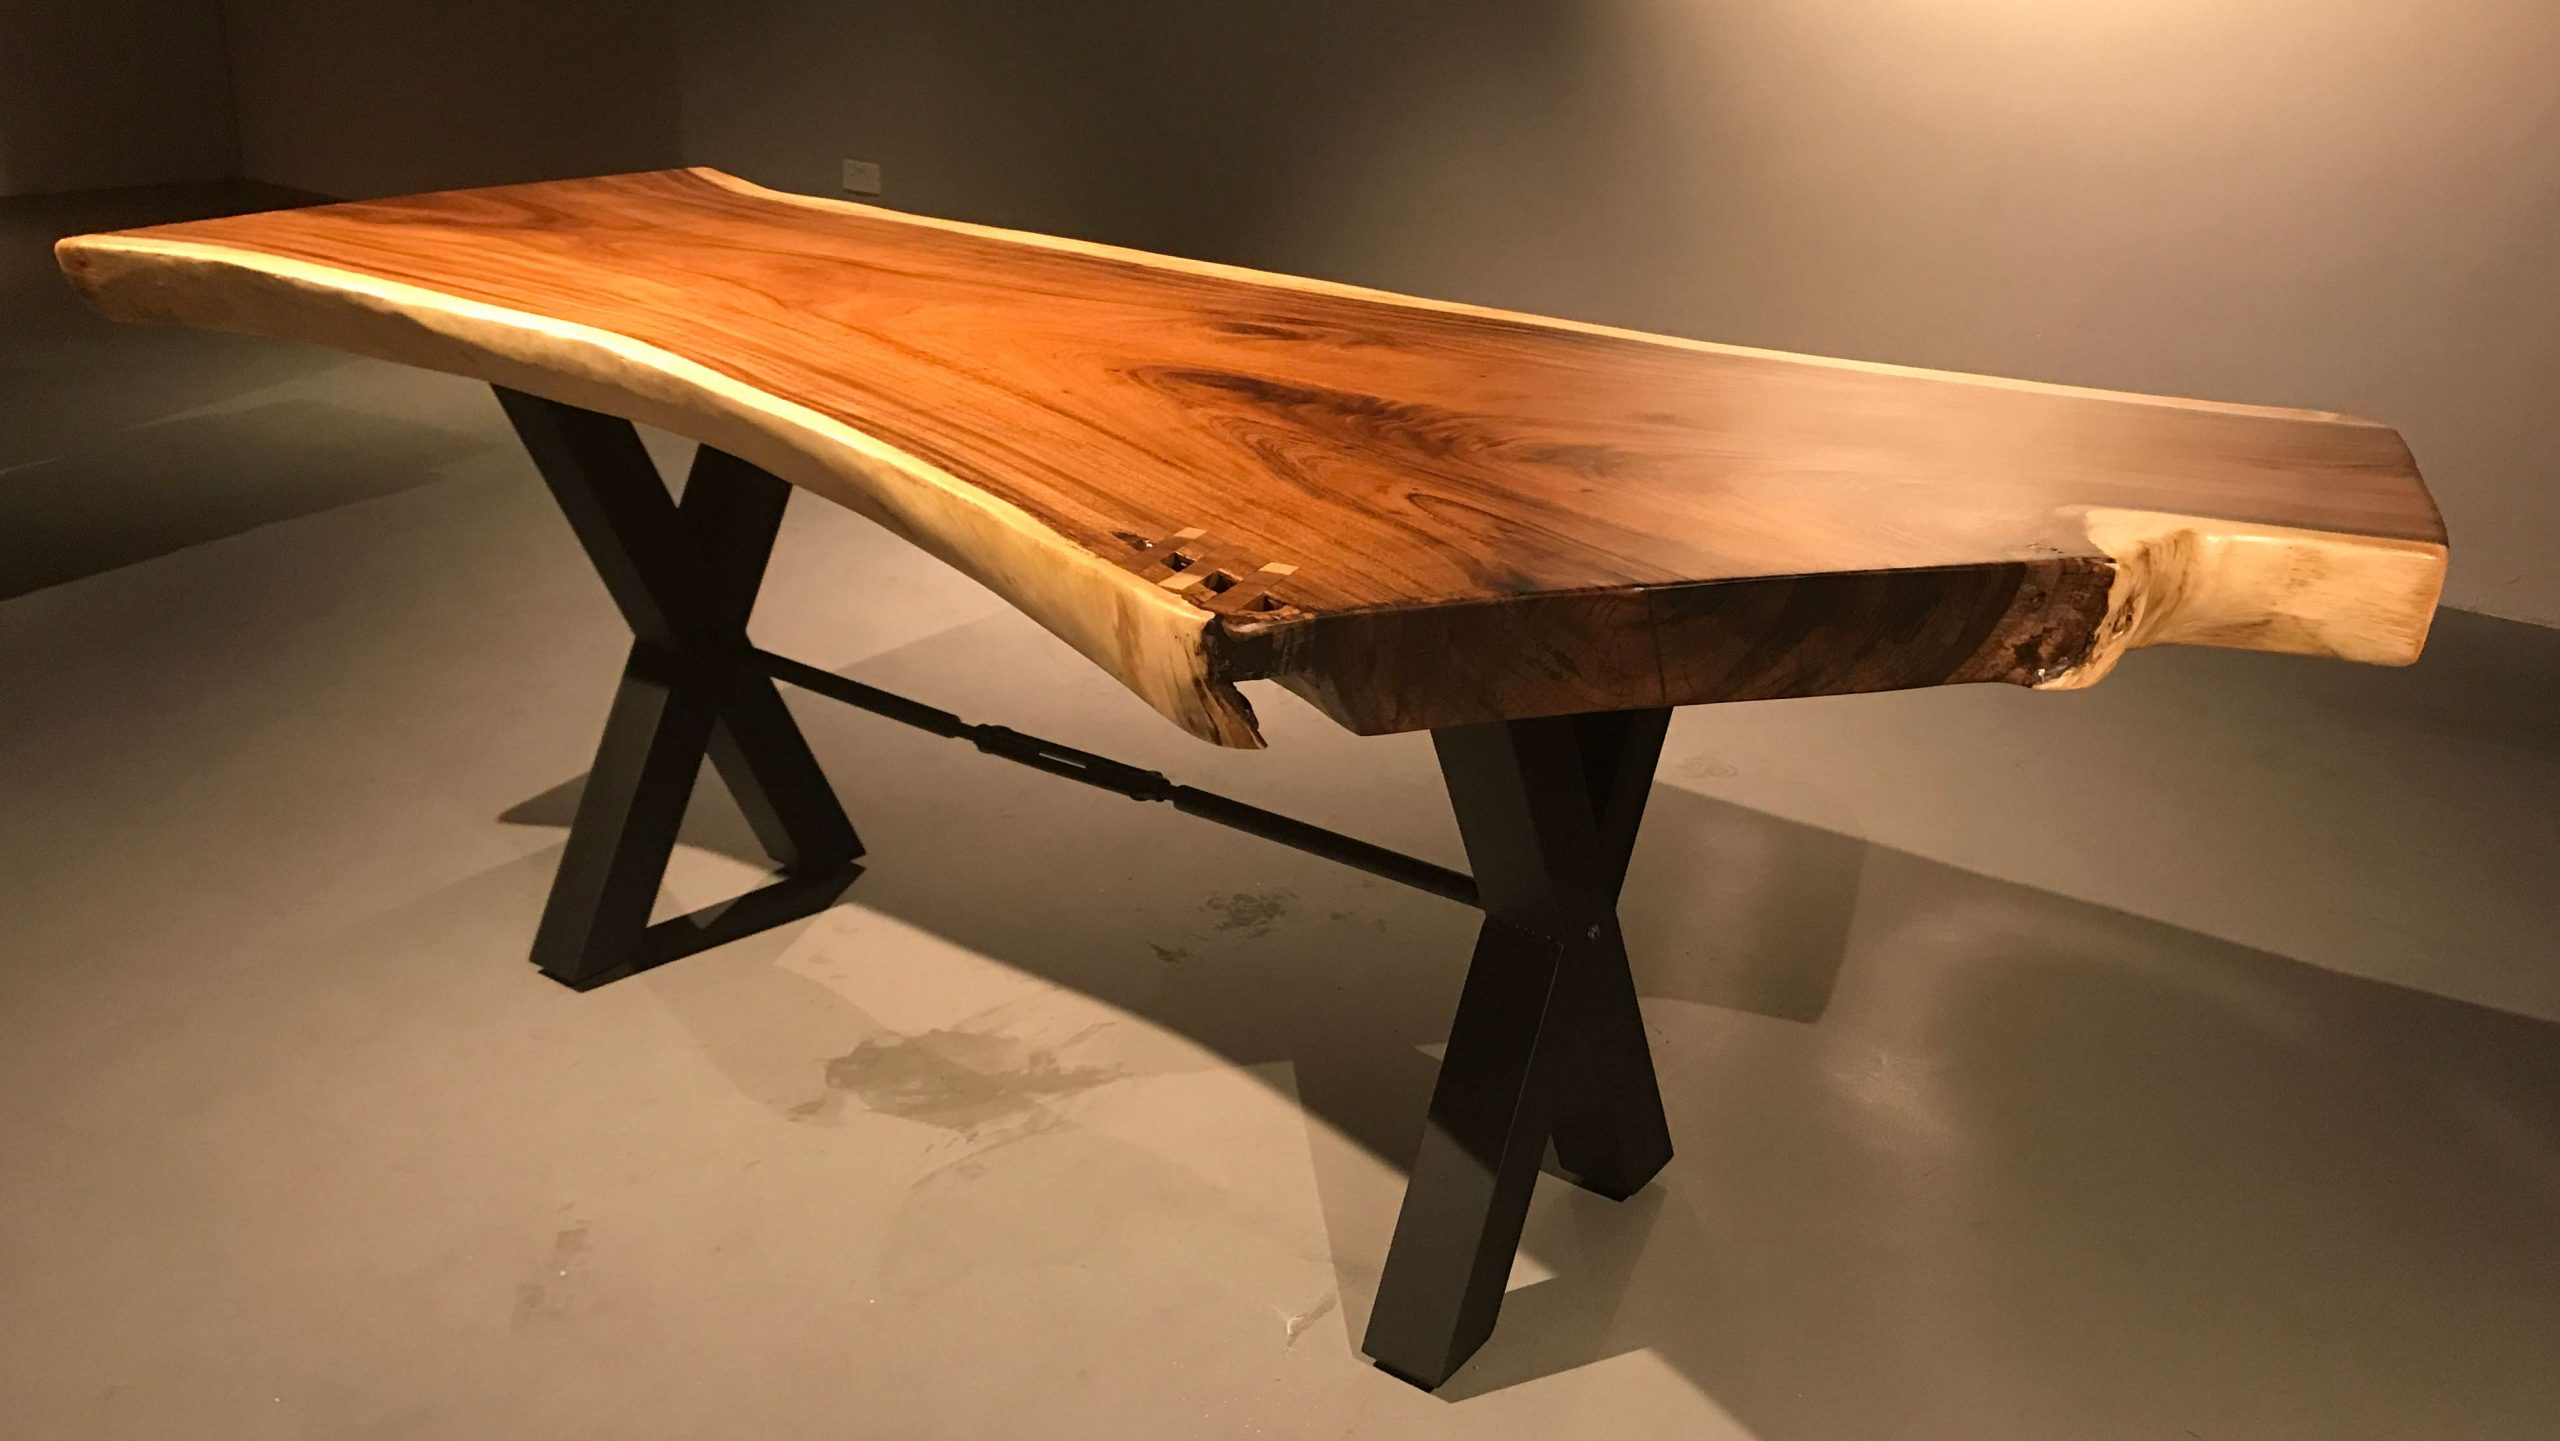 Dining table wood header